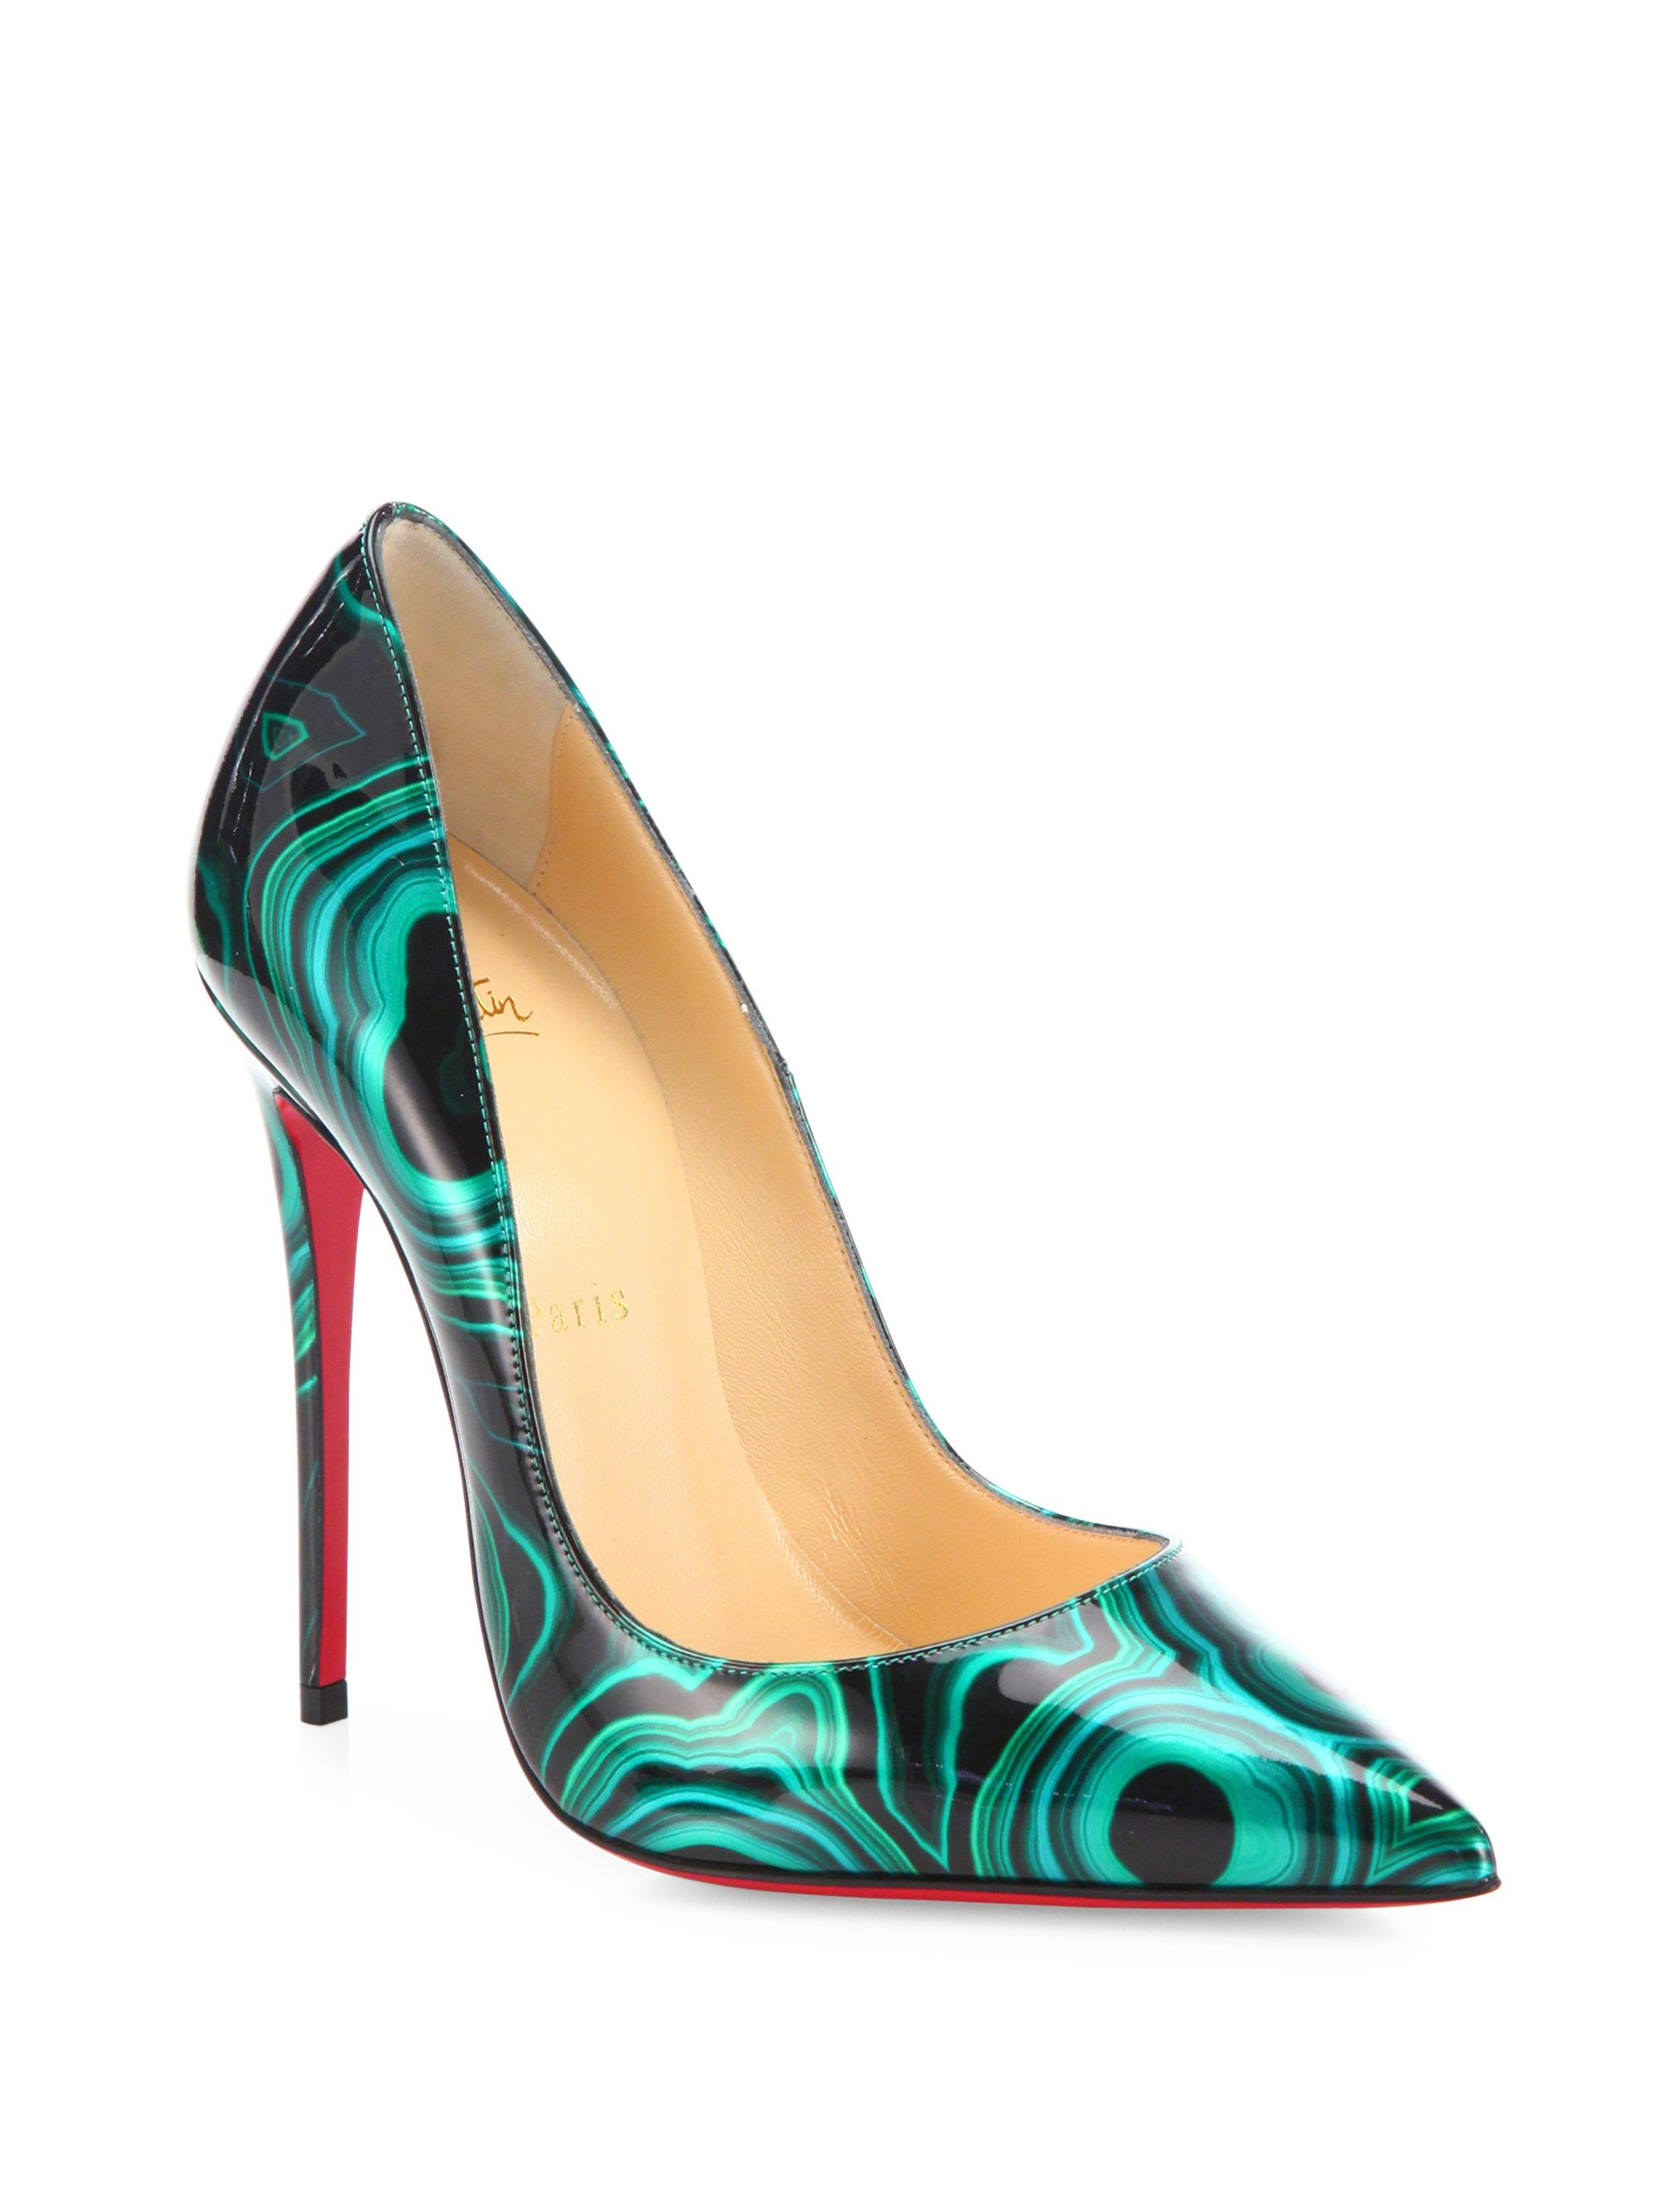 afeed5724c06 Women s Green So Kate Printed Patent Leather Point-toe Pumps ...